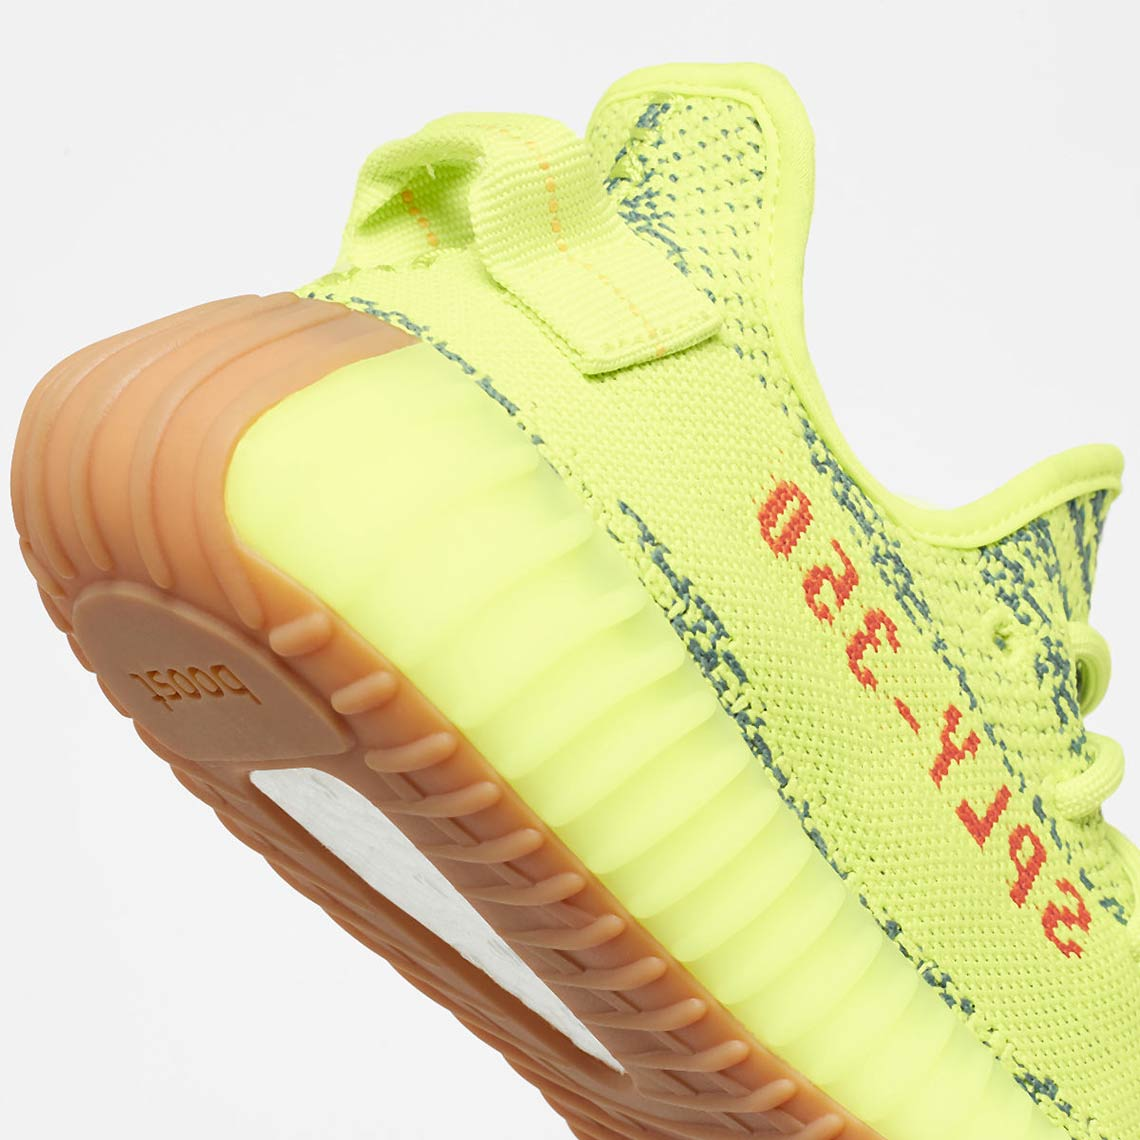 f81527dade0 Yeezy 350 Semi Frozen Yellow Store List